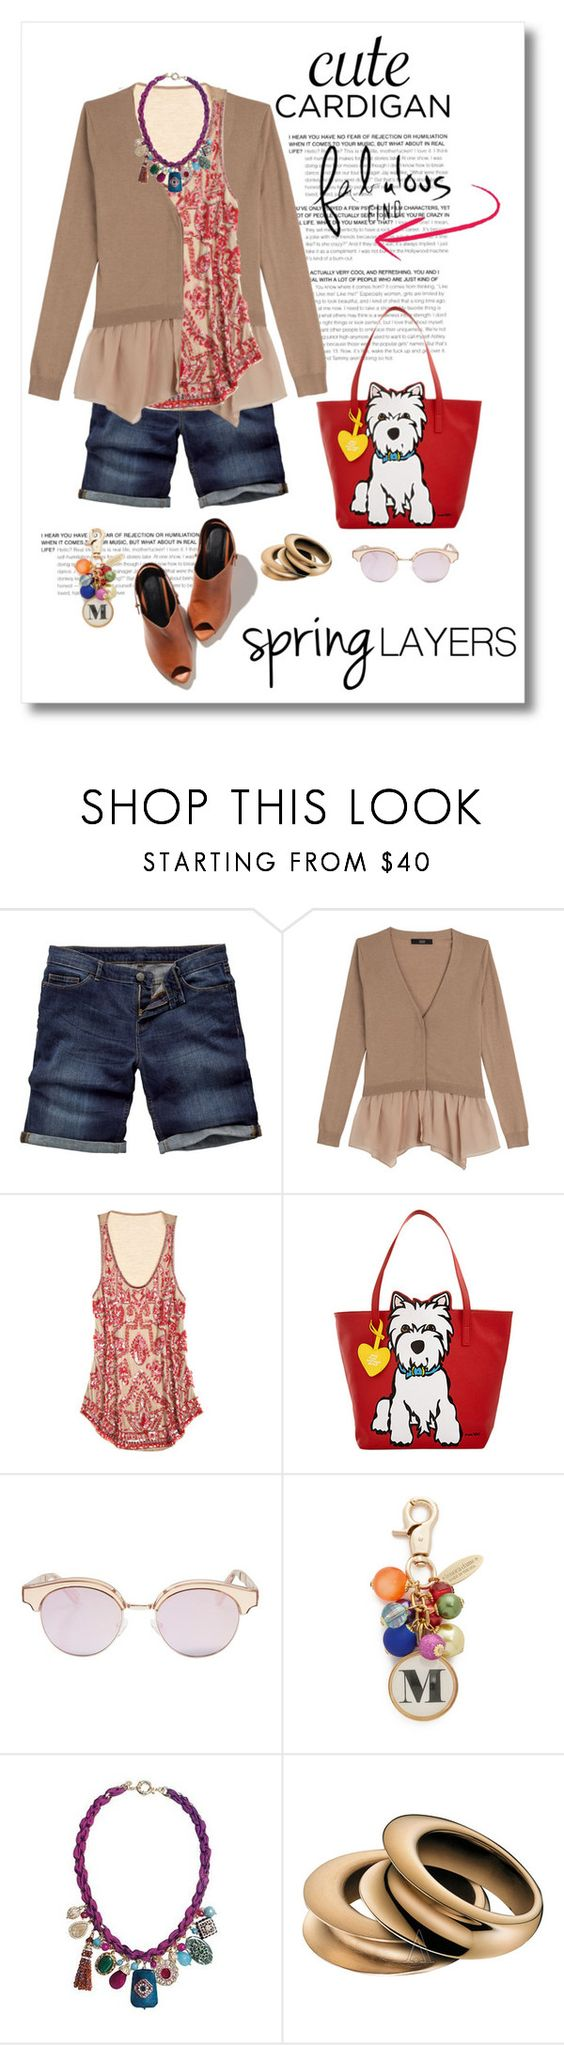 """""""Cute Spring Cardis"""" by mellapr ❤ liked on Polyvore featuring Fat Face, Steffen Schraut, Calypso St. Barth, Marc Tetro, Le Specs, Lenora Dame, Calvin Klein, cutecardigan and springlayers"""